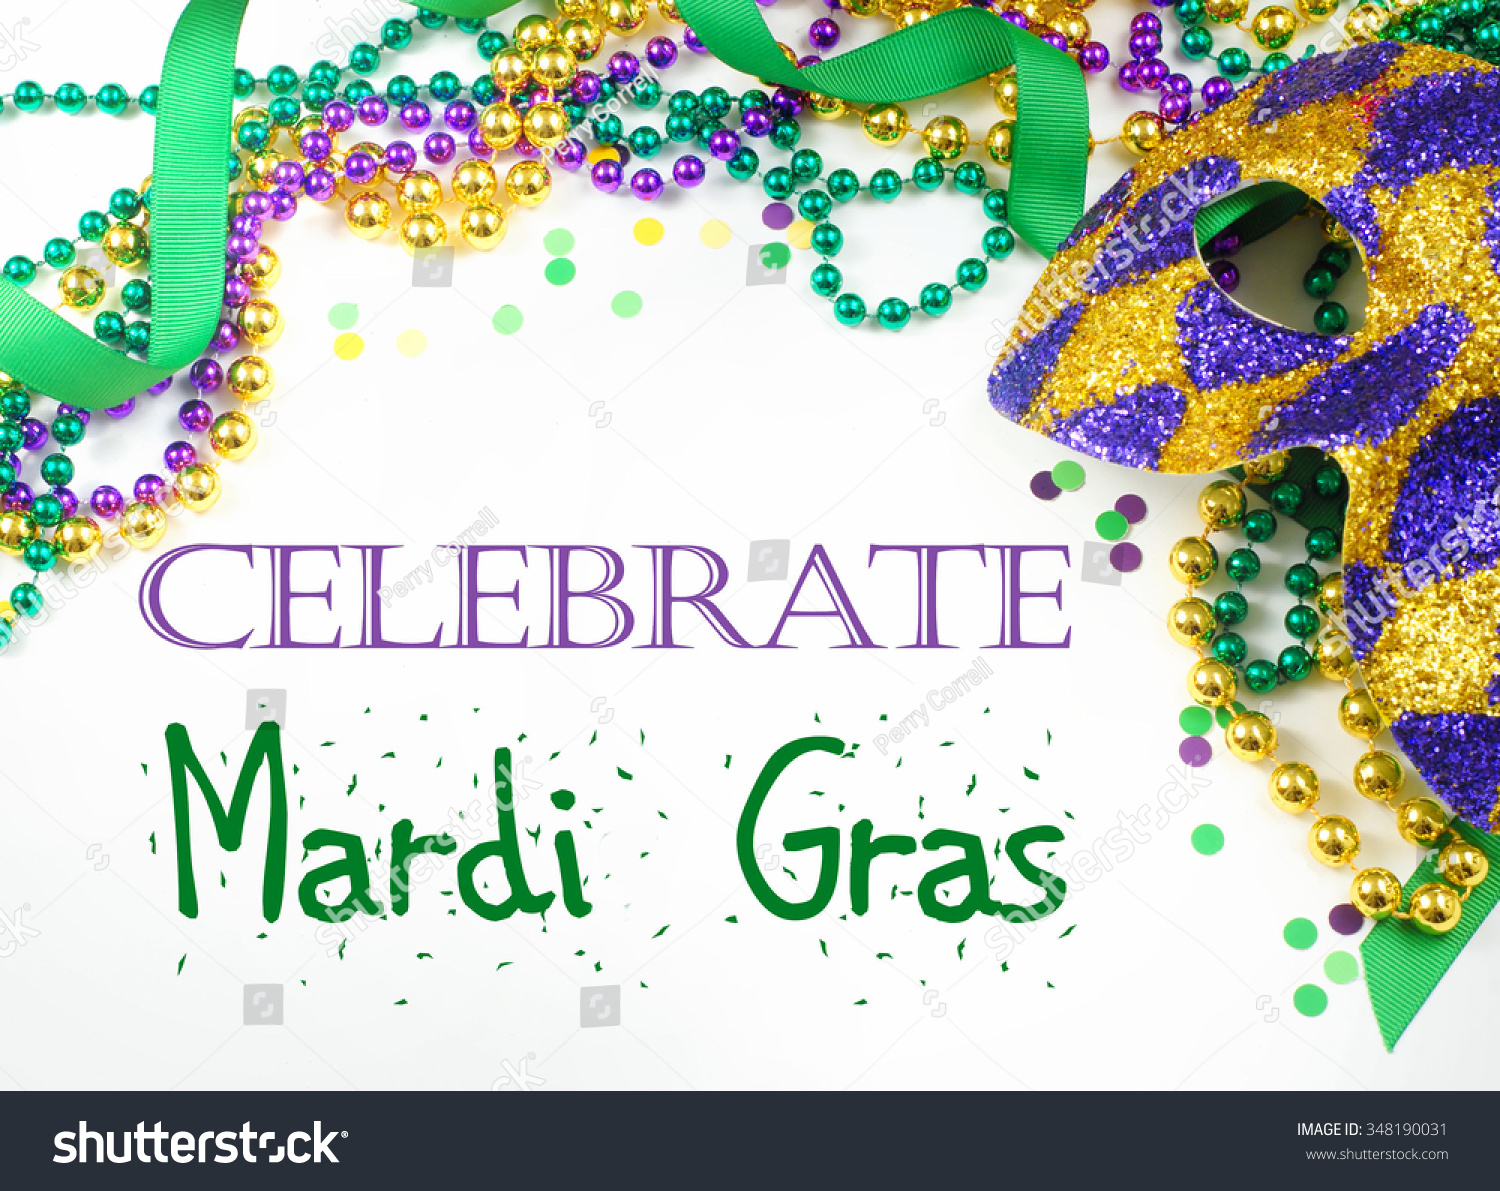 mardi same year is tuesday the gras many this so as carnival fat day feb beads